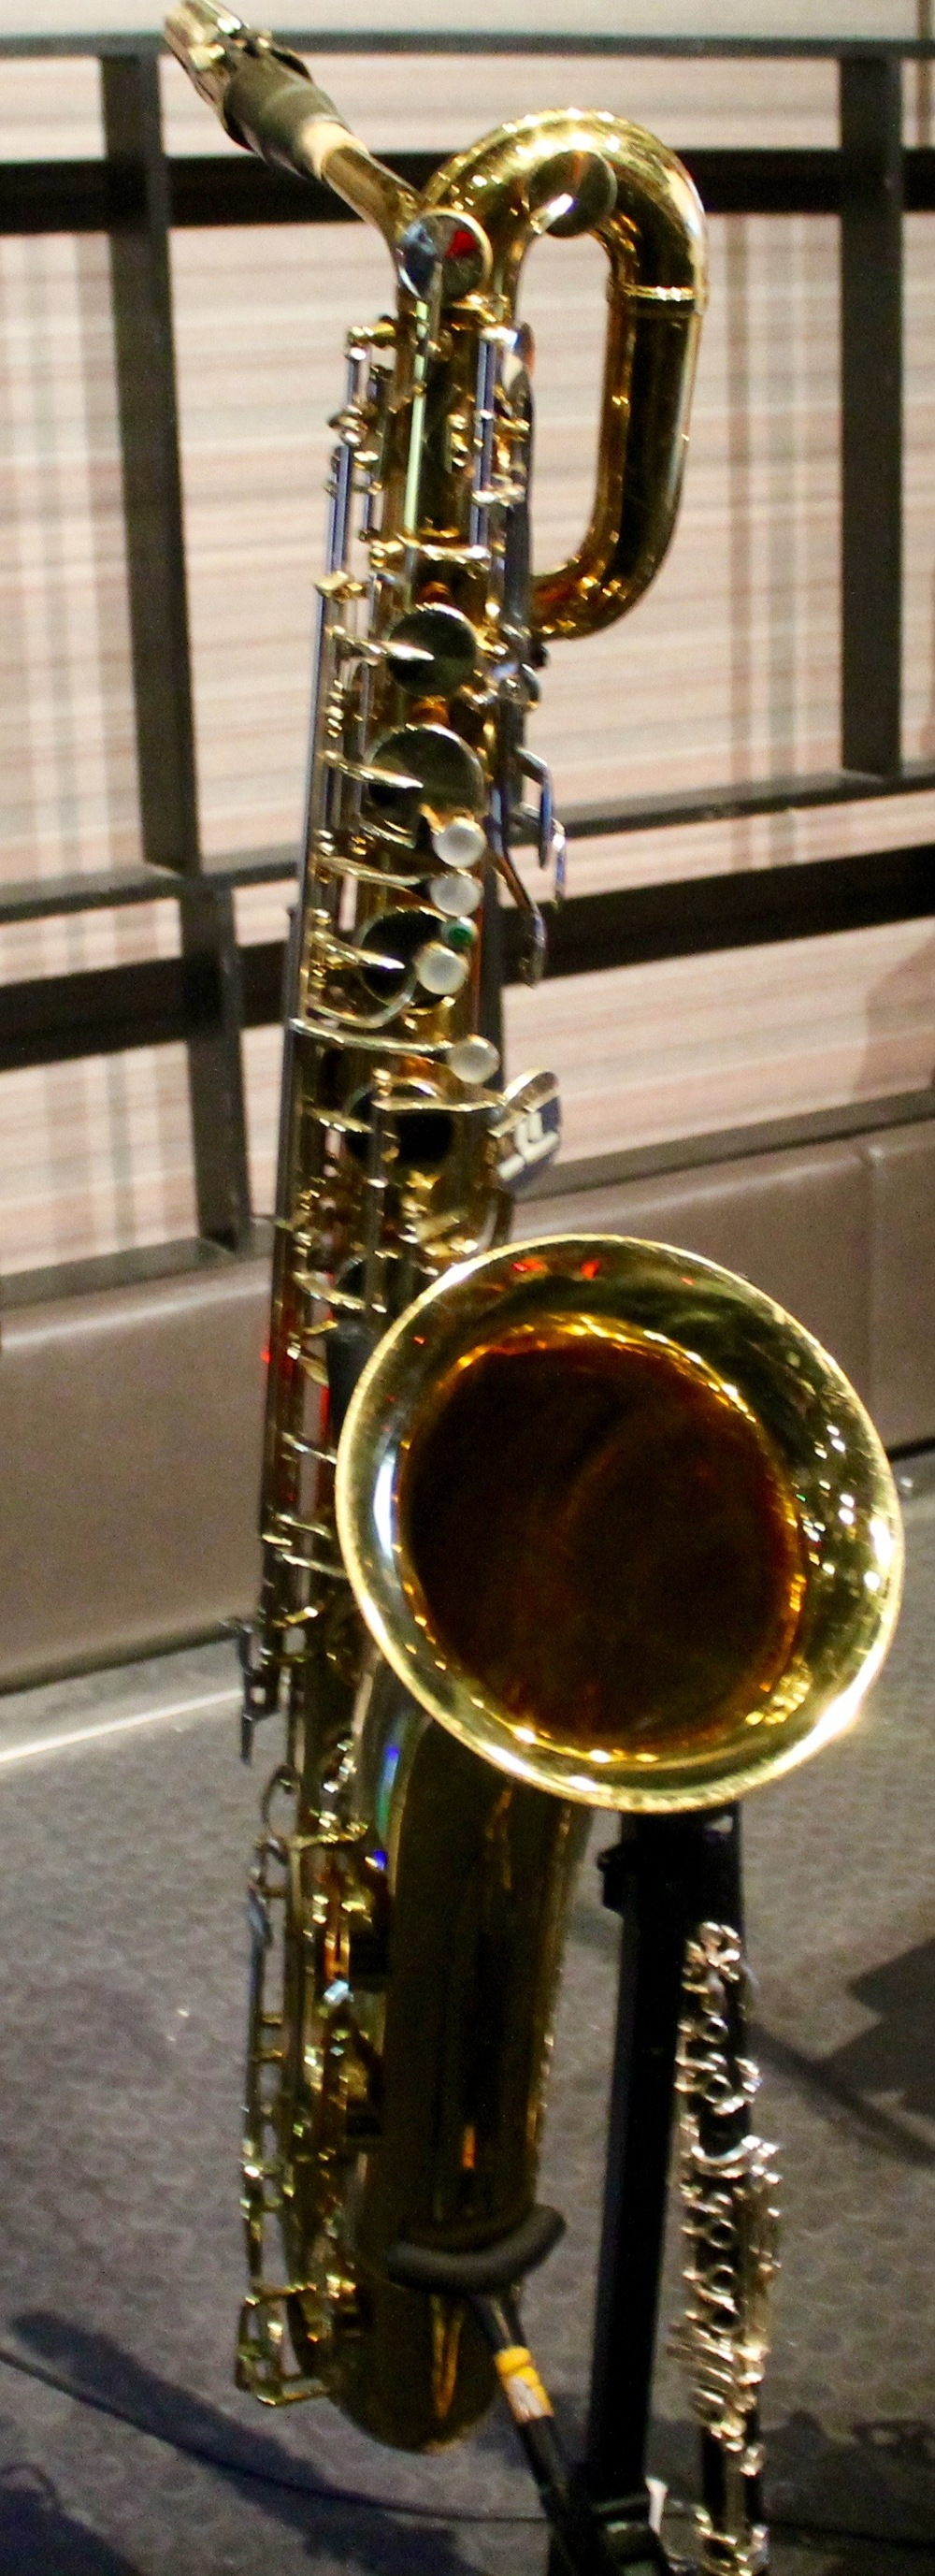 Jim Galloway's baritone sax at the 120 Diner in Toronto, which is now owned and played by jazz musician John MacMurchy - Mar. 2016